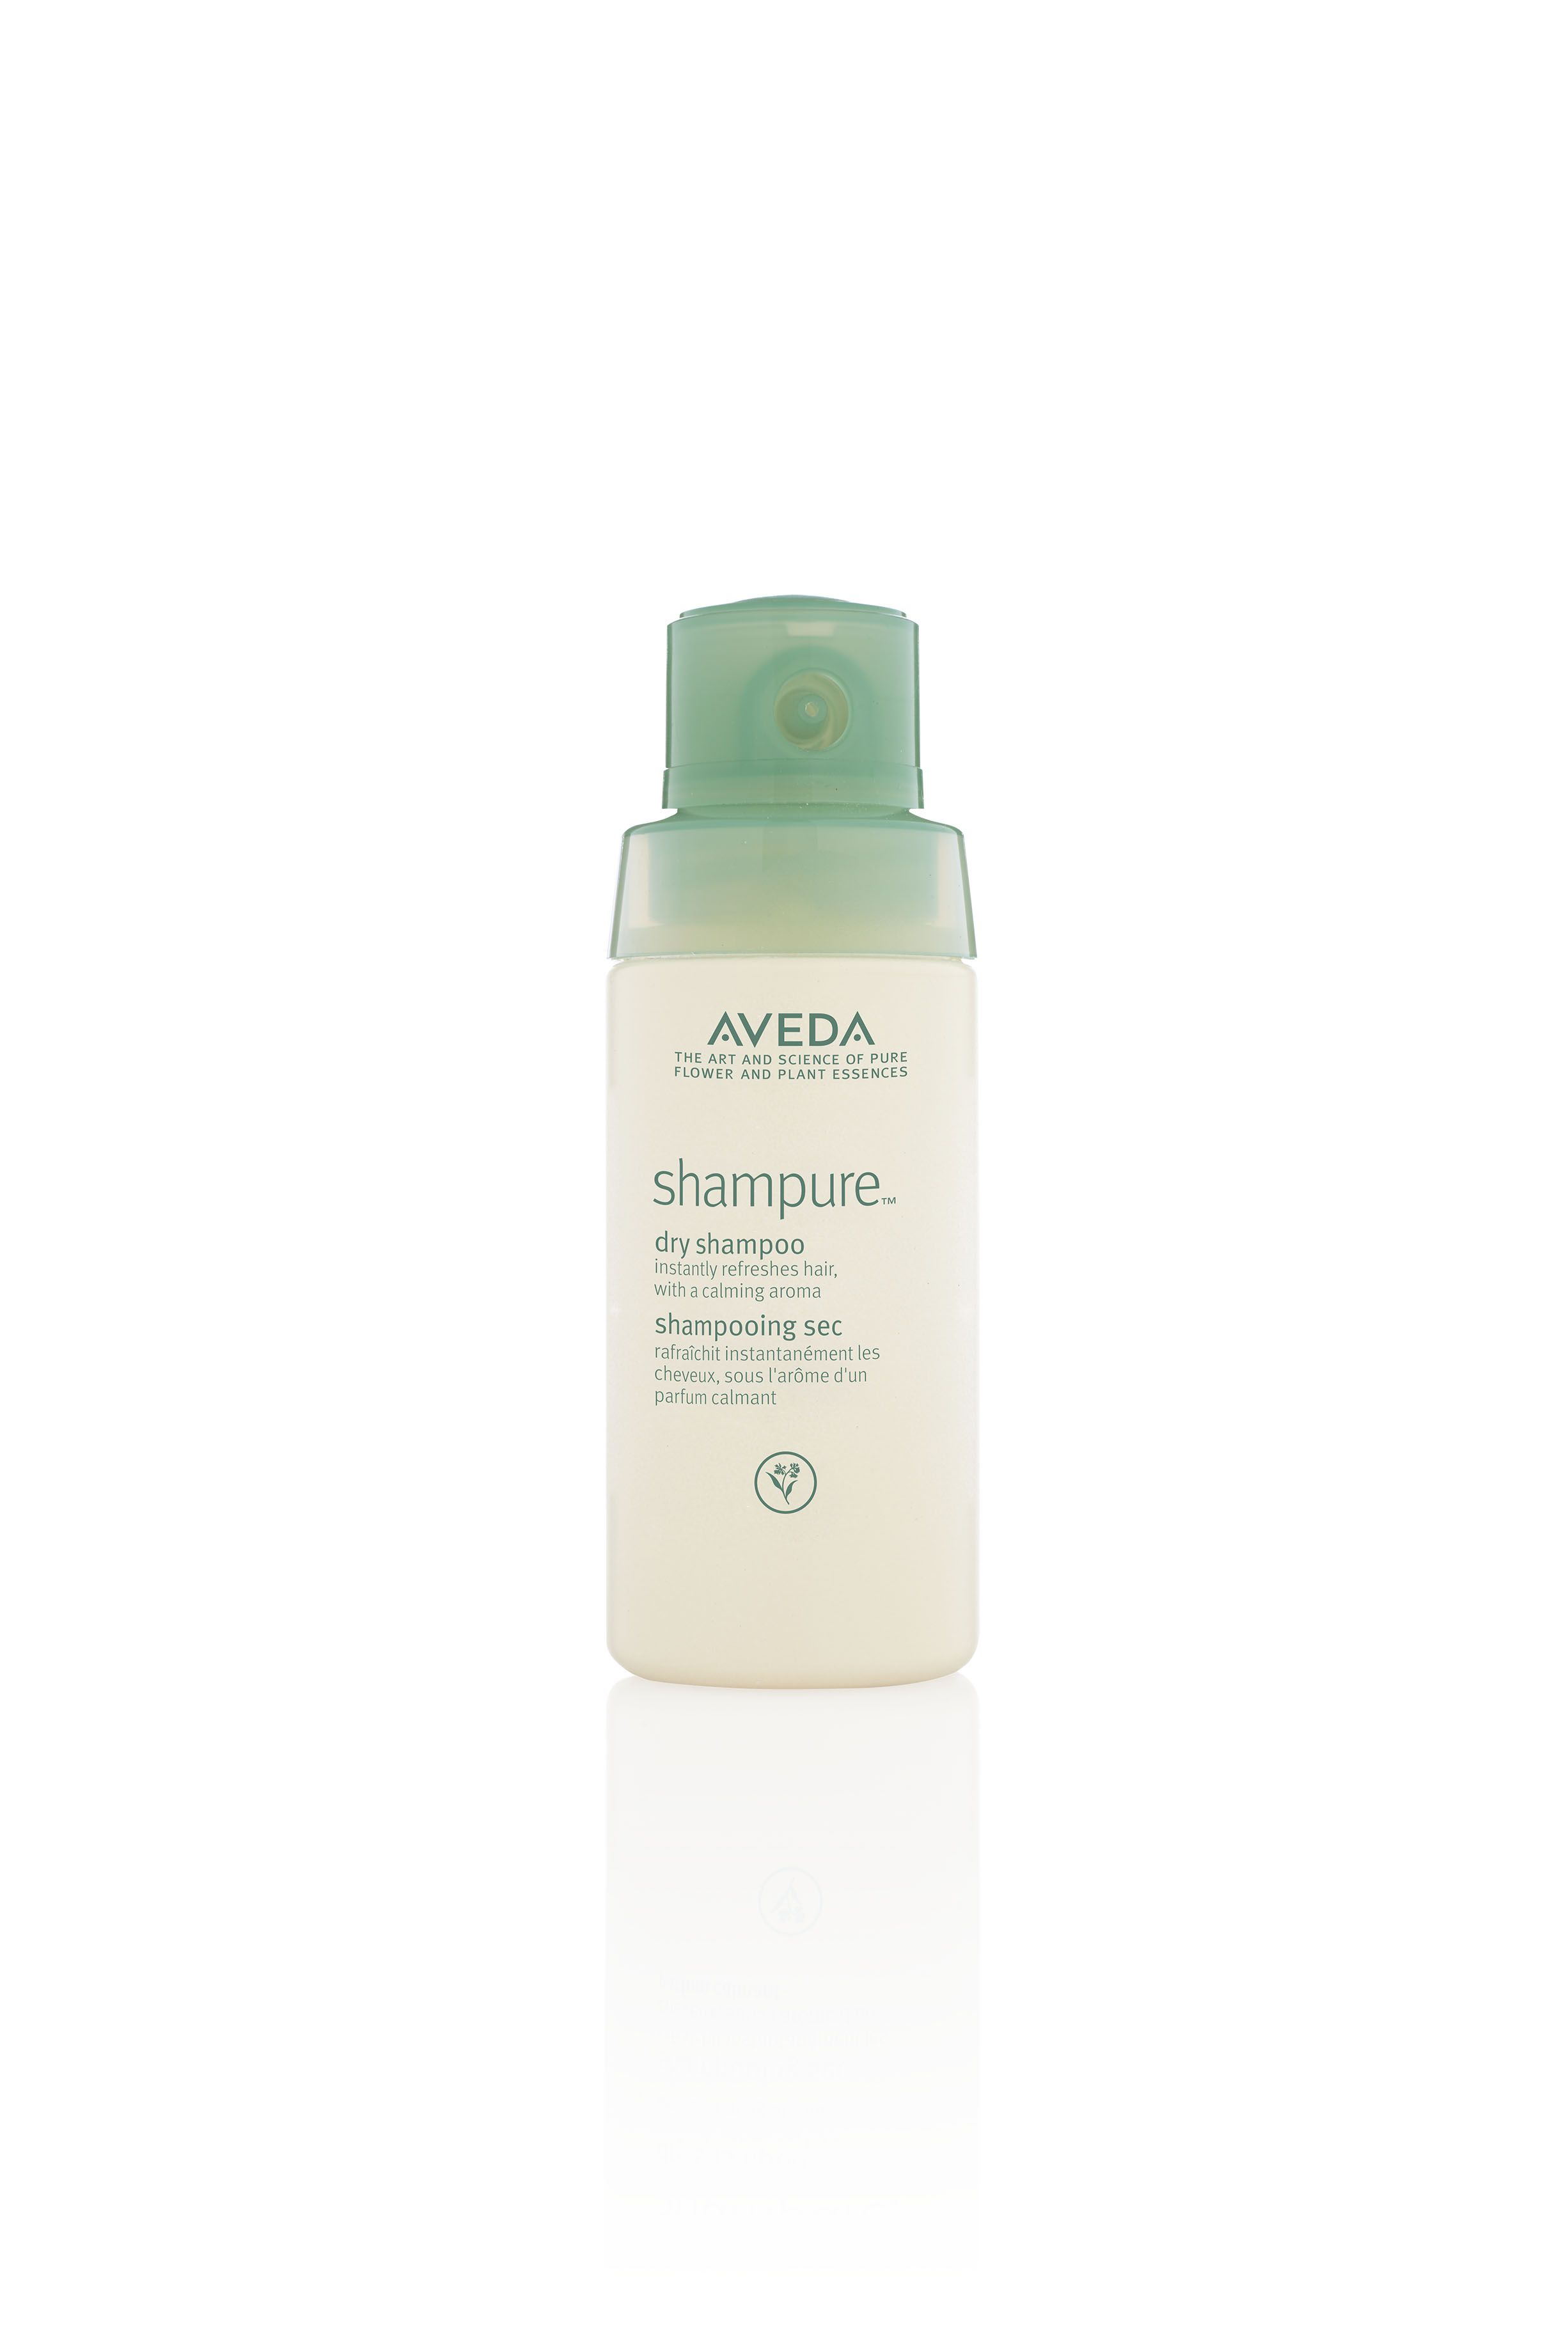 Shampure Dry Shampoo Hair Products Basicos De Maquillaje